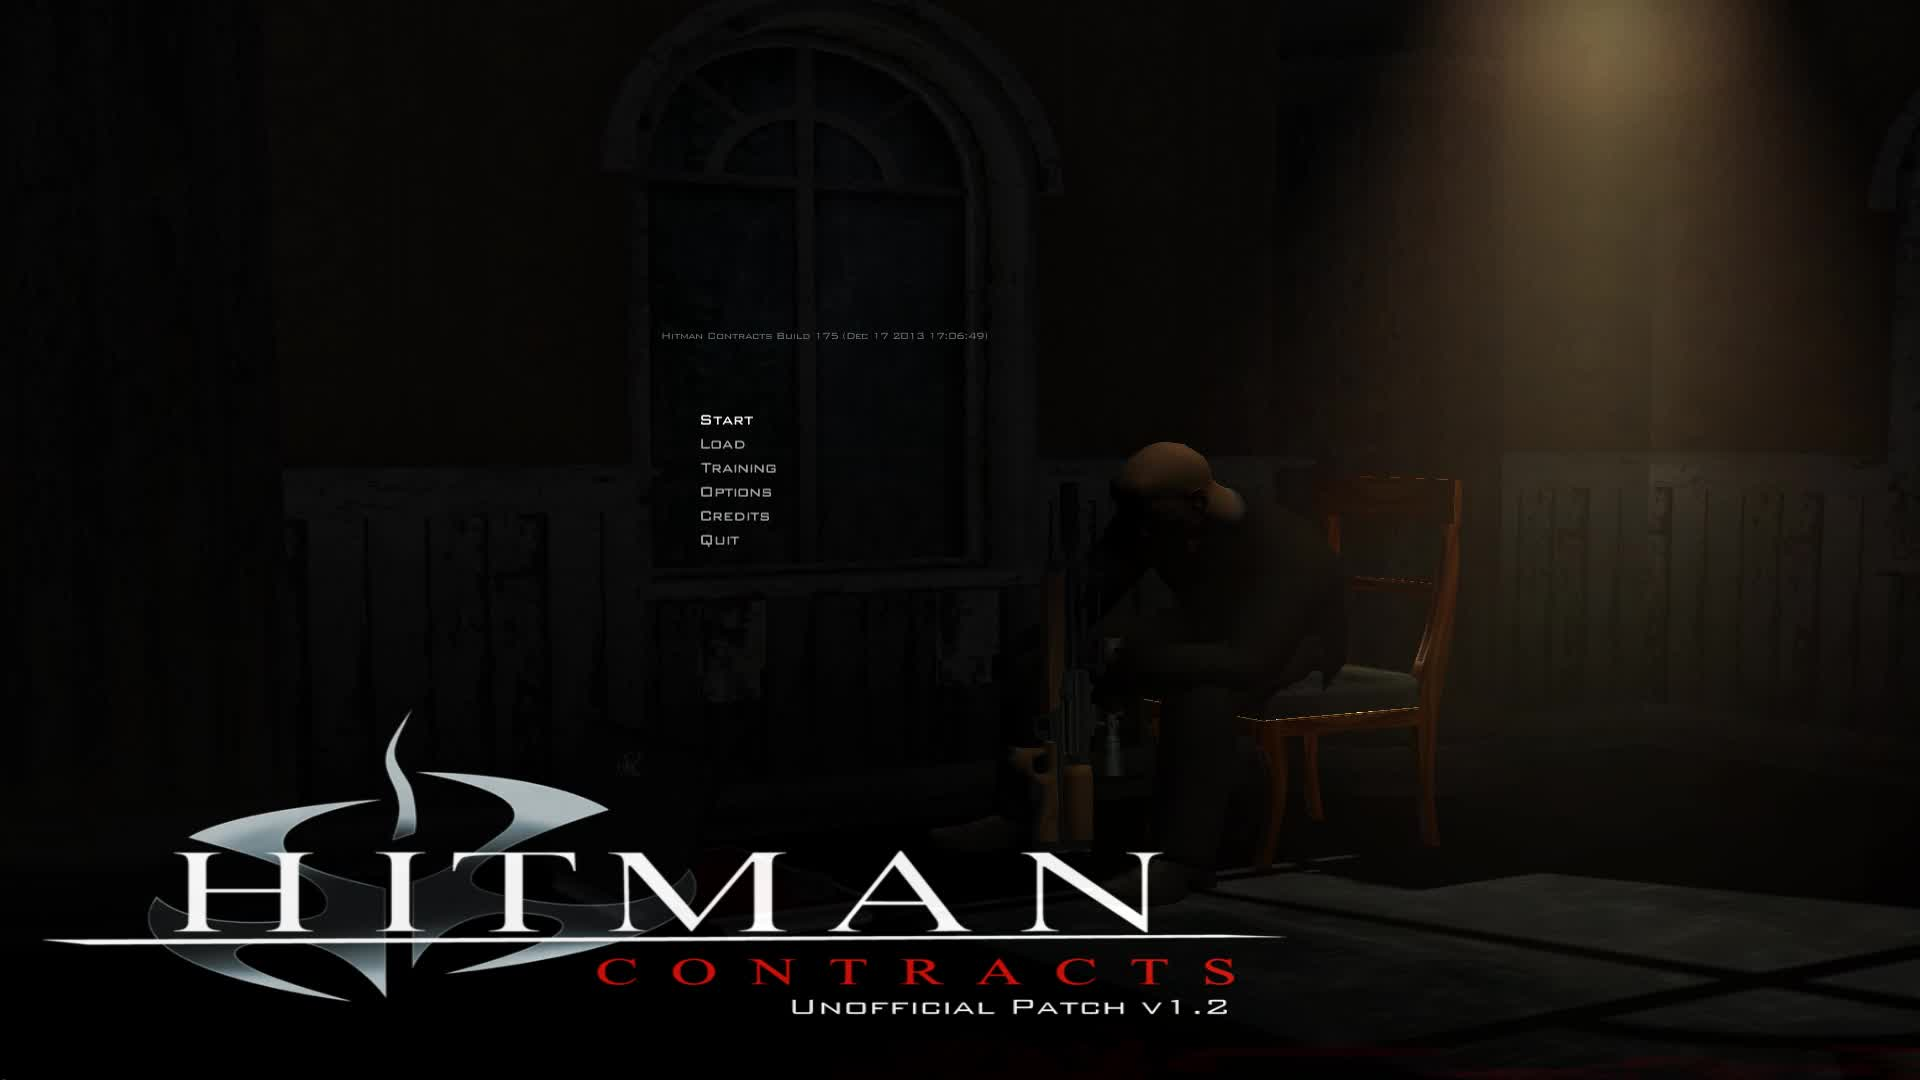 Release] Hitman: Contracts - Unofficial Patch - Hitman